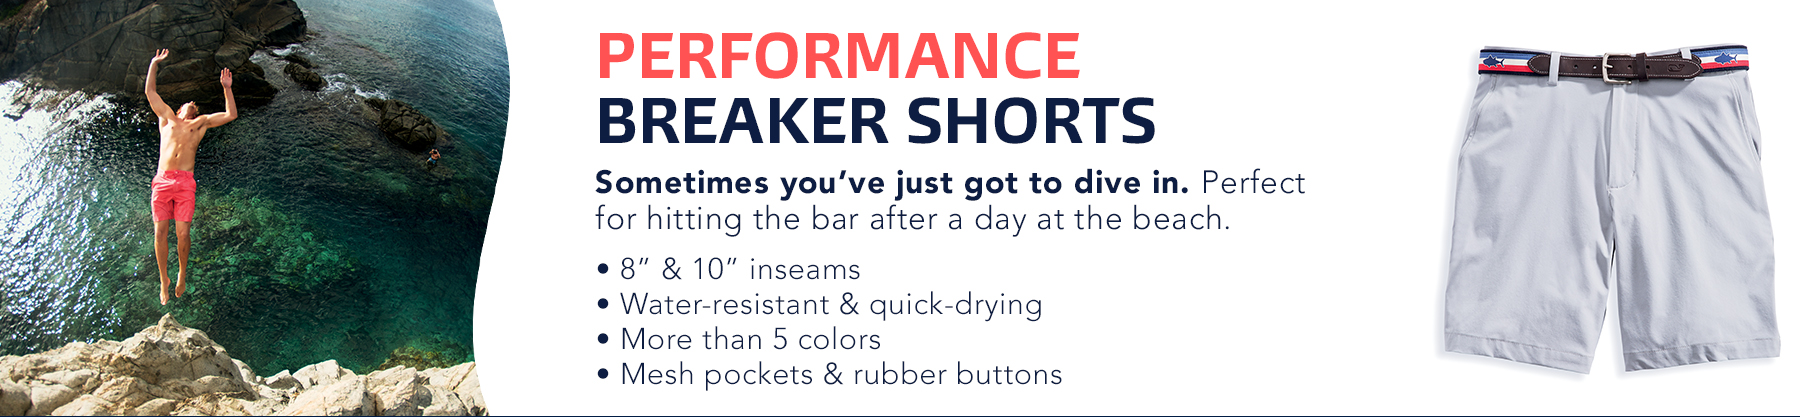 Performance Breaker Shorts. Sometimes you've just got to dive in. Perfect for hitting the bar after a day at the beach. 8 and 10 inch inseams. Water-resistant and quick-drying. More than 5 colors. Mesh pockets & rubber buttons